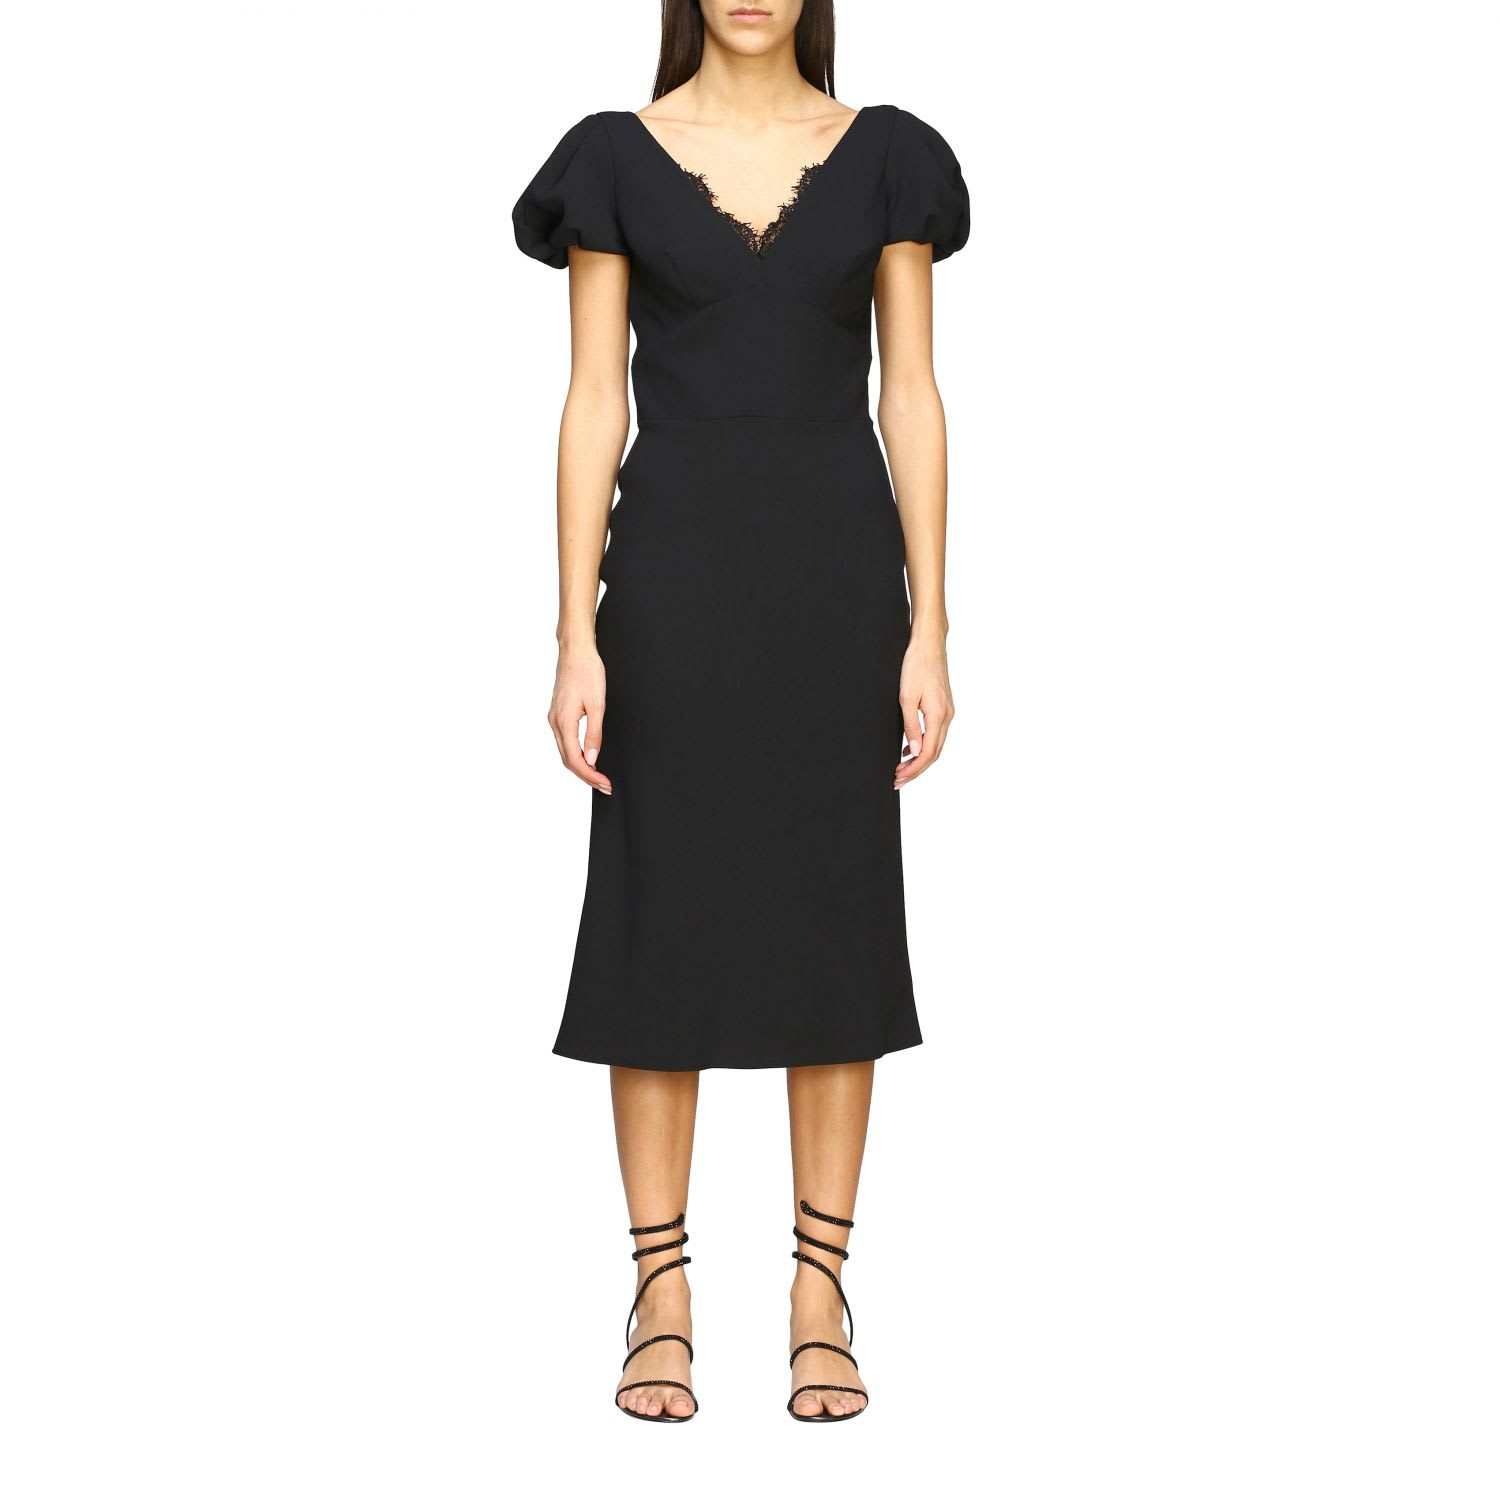 Buy Ermanno Scervino Dress Ermanno Scervino Cady Dress With Lace Details online, shop Ermanno Scervino with free shipping